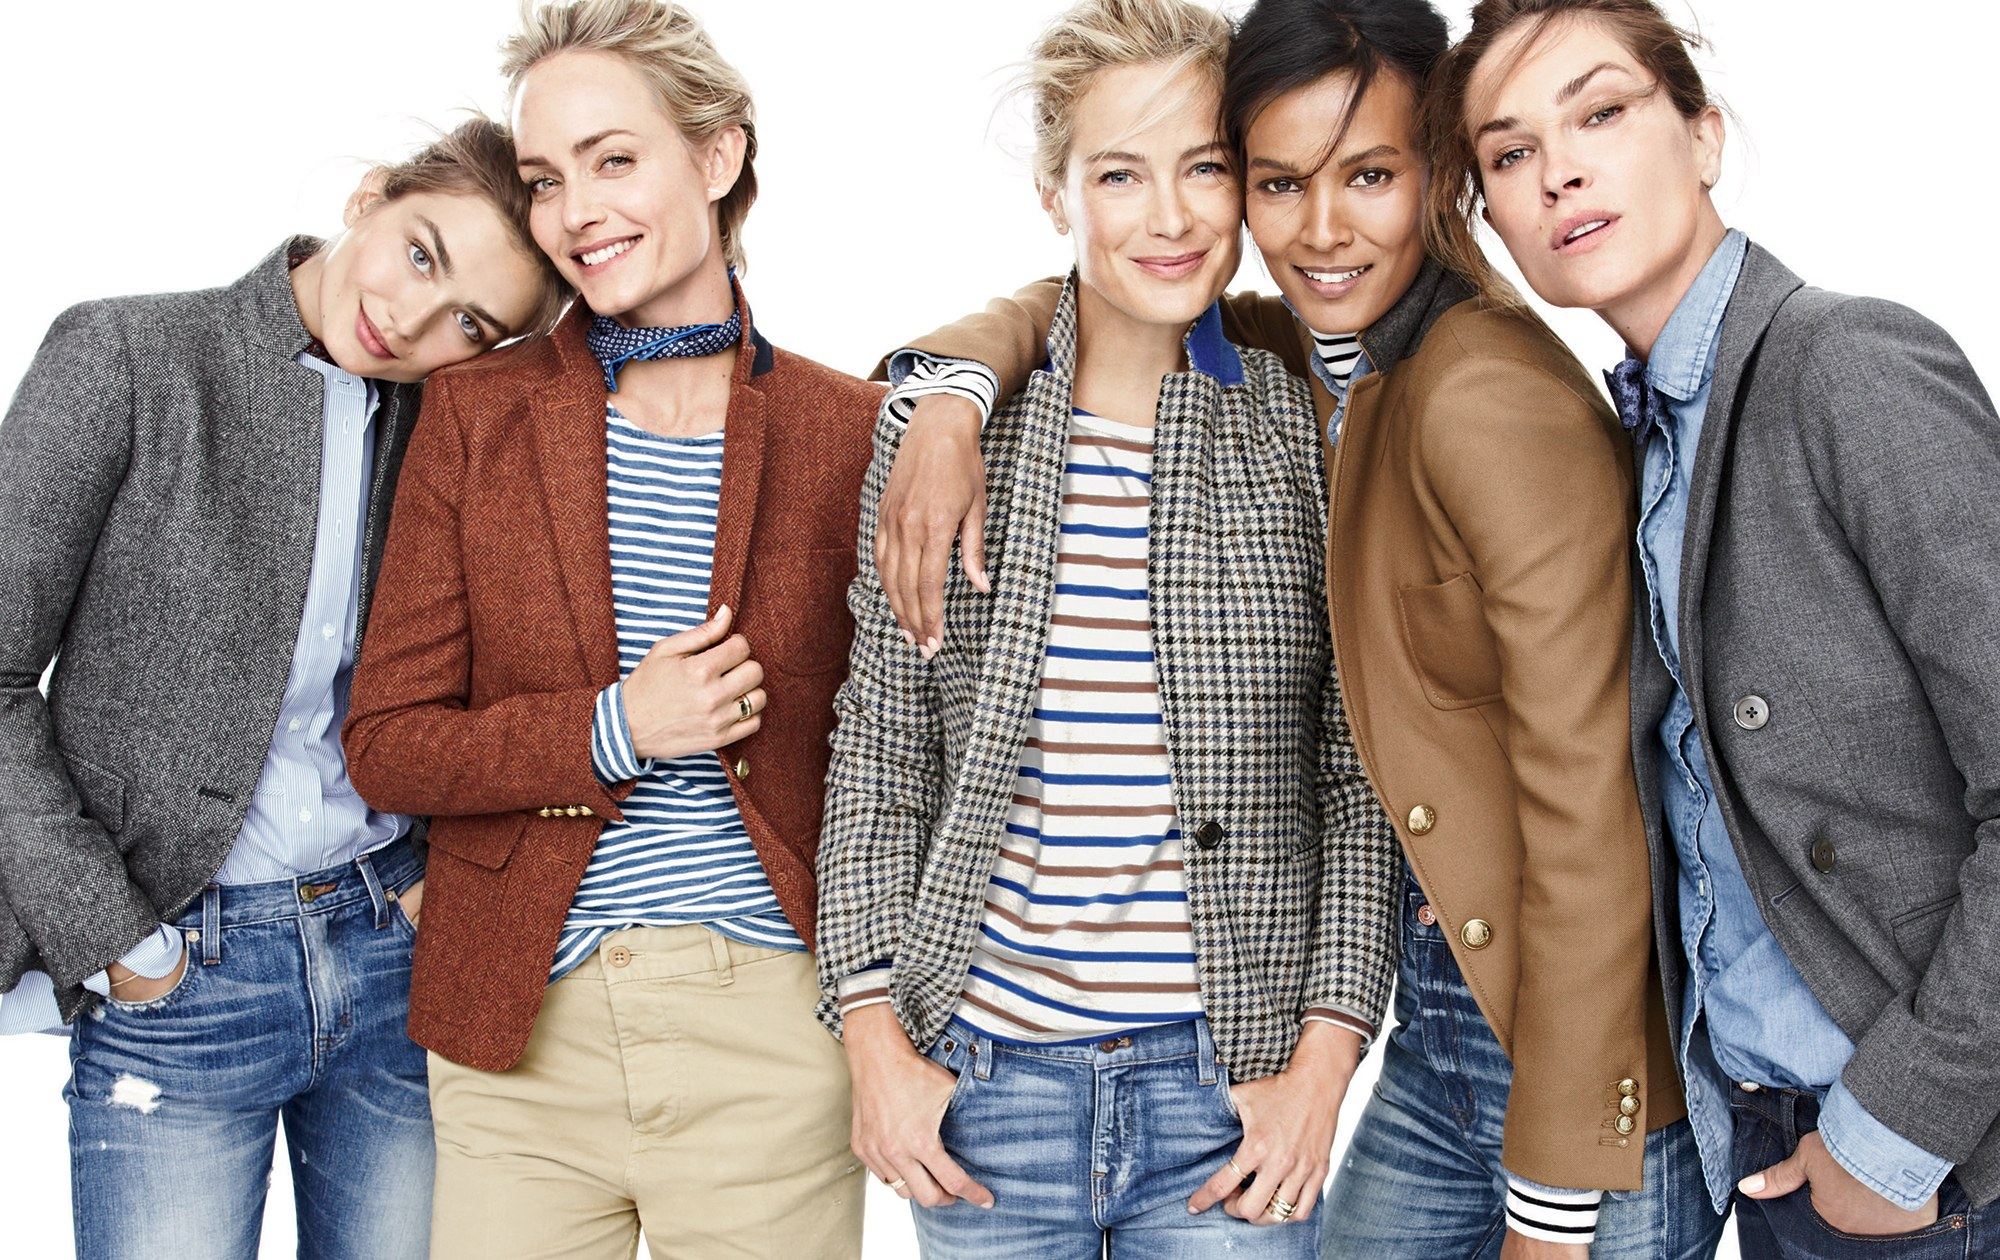 J. Crew Gets Reworked and Net-a-Porter Goes After New Designers